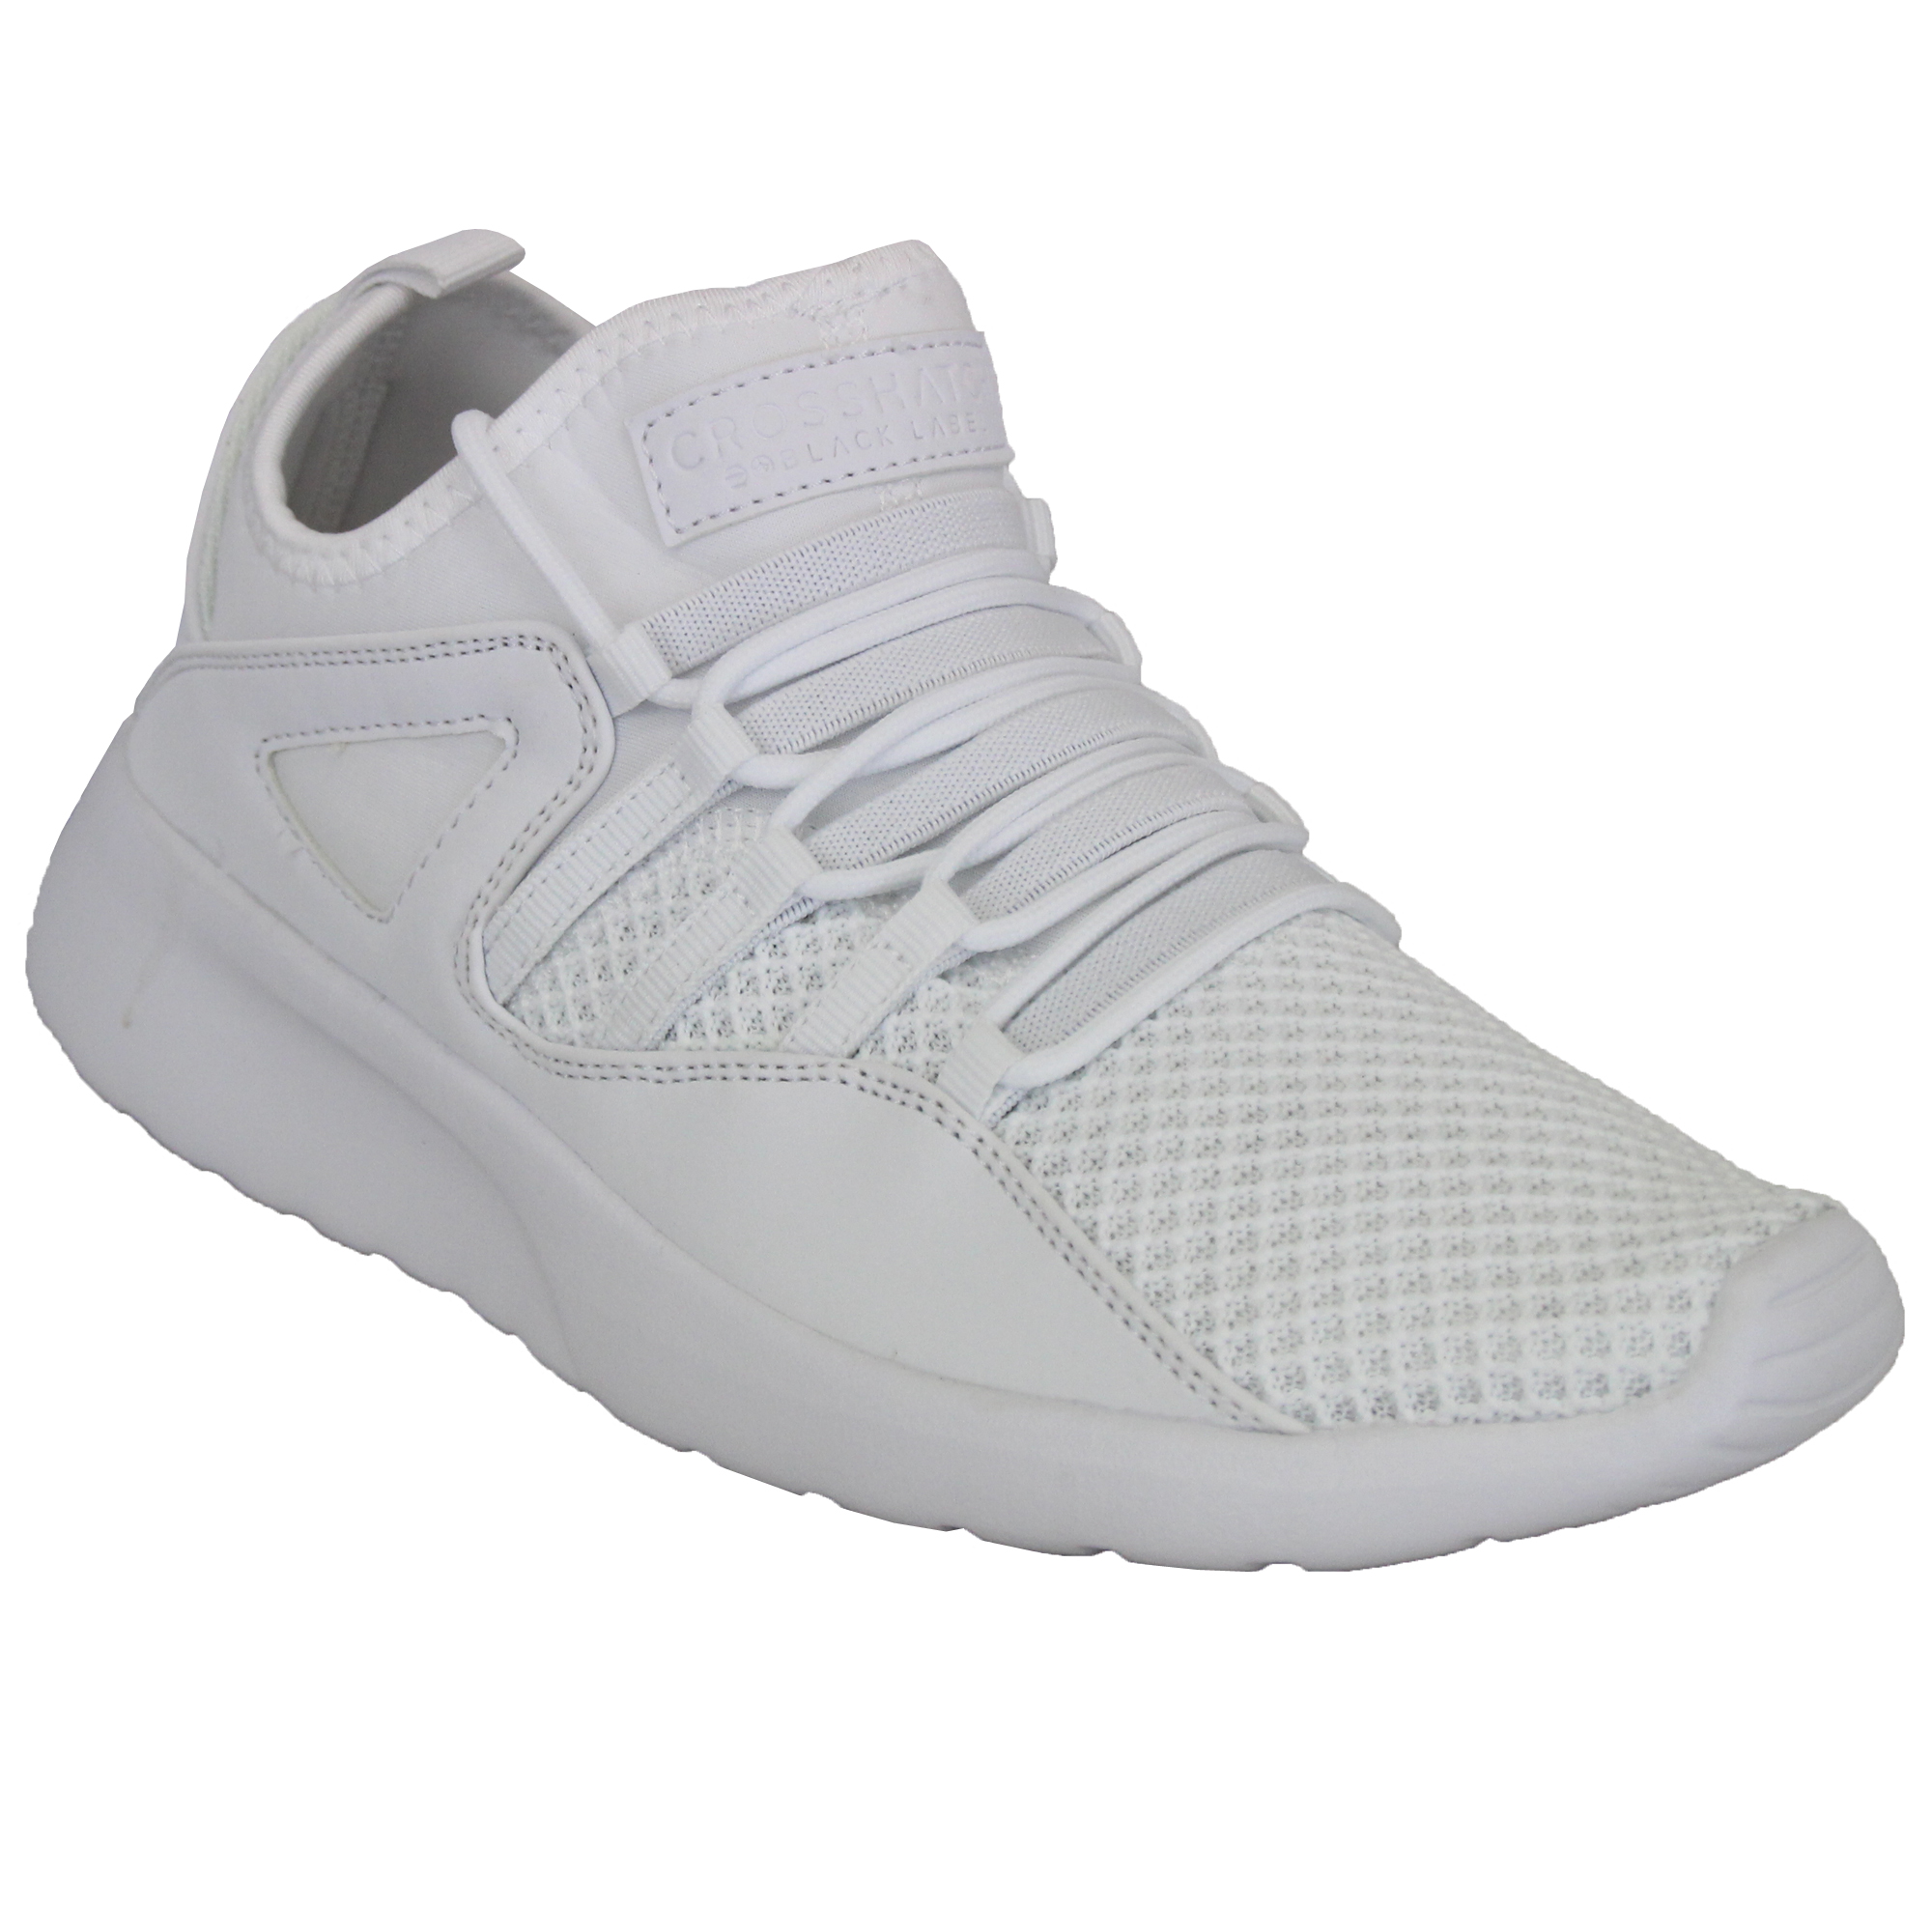 Mens-Trainers-Crosshatch-Running-Speed-Lace-Up-Sneakers-Sports-Gym-Casual-Shoes thumbnail 10